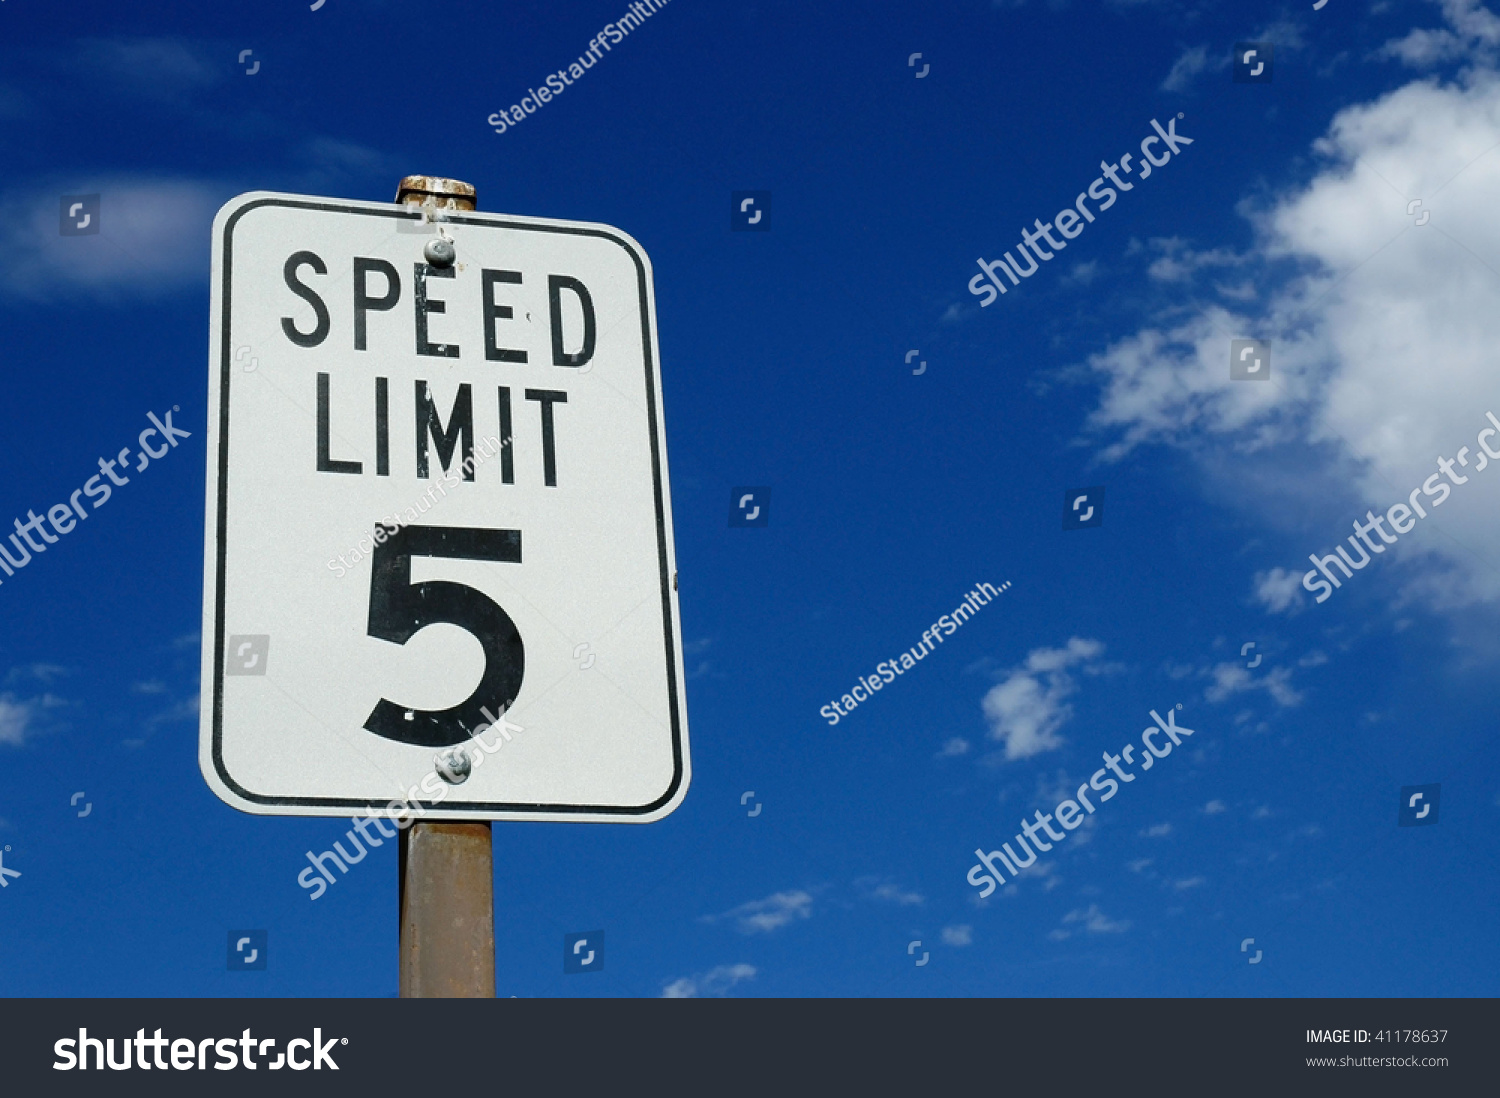 Essays against speed limits